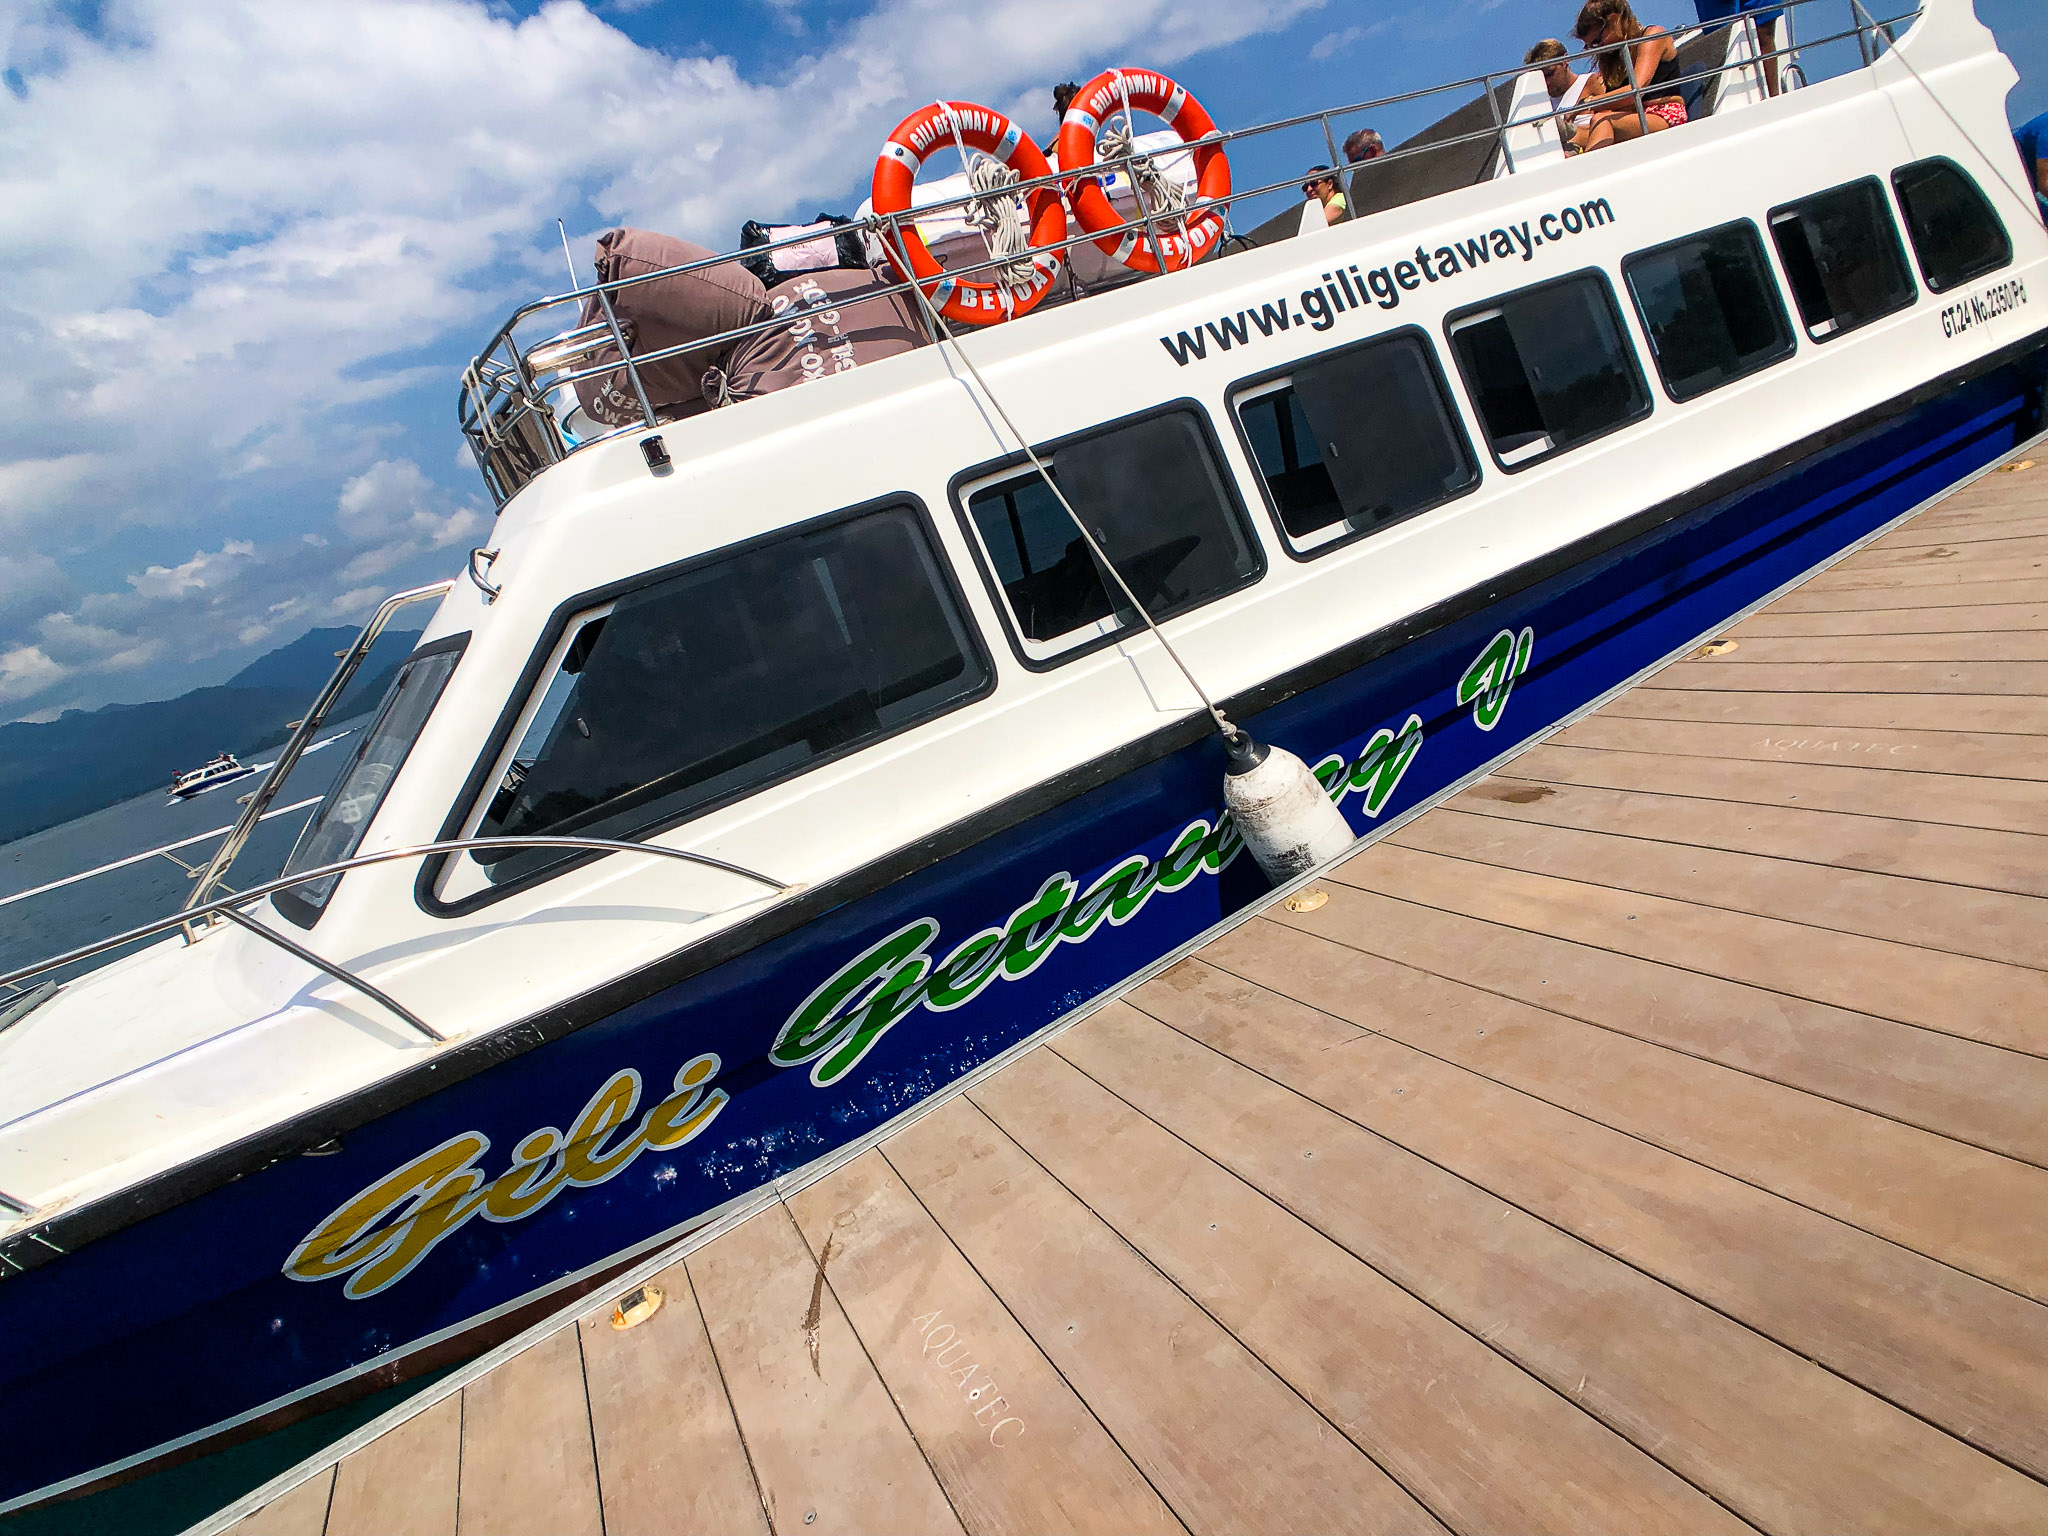 The UPDATED 2021 Bali Fast Speed Boat & Ferry Guide and Ratings